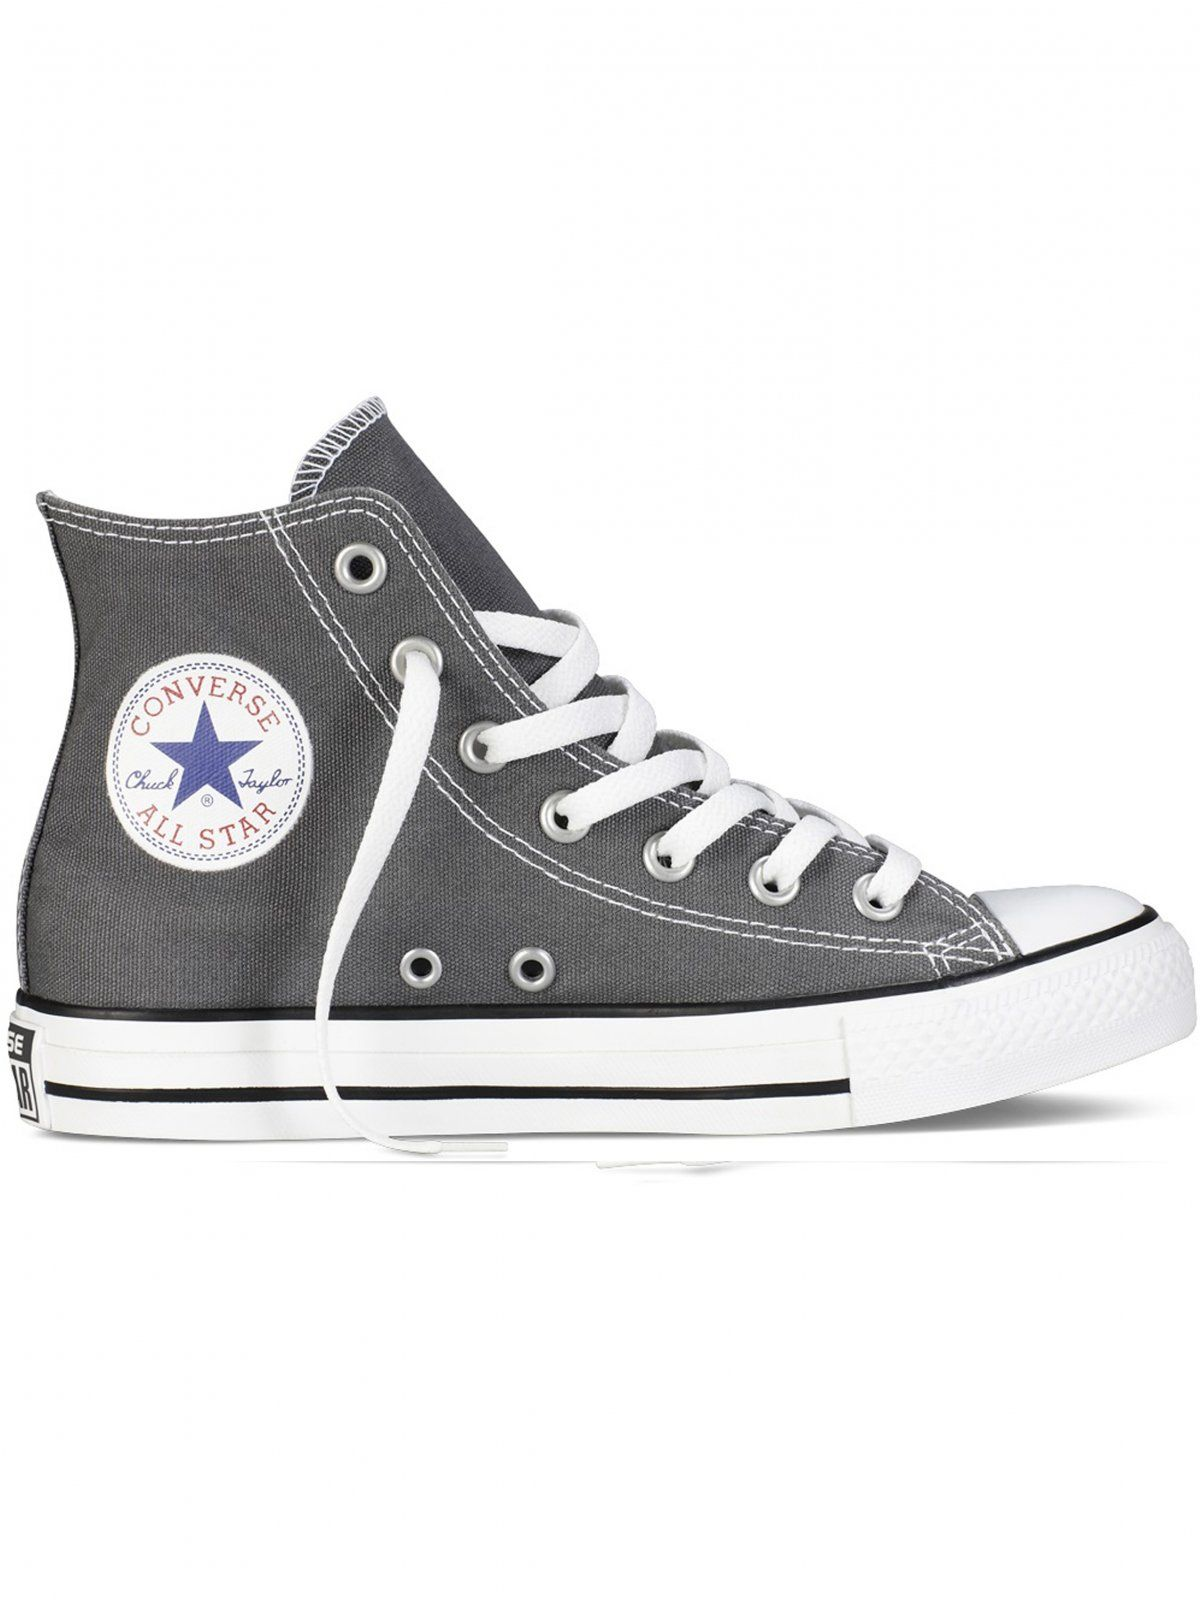 Converse All Star Unisex Chuck Taylor High Tops - Charcoal